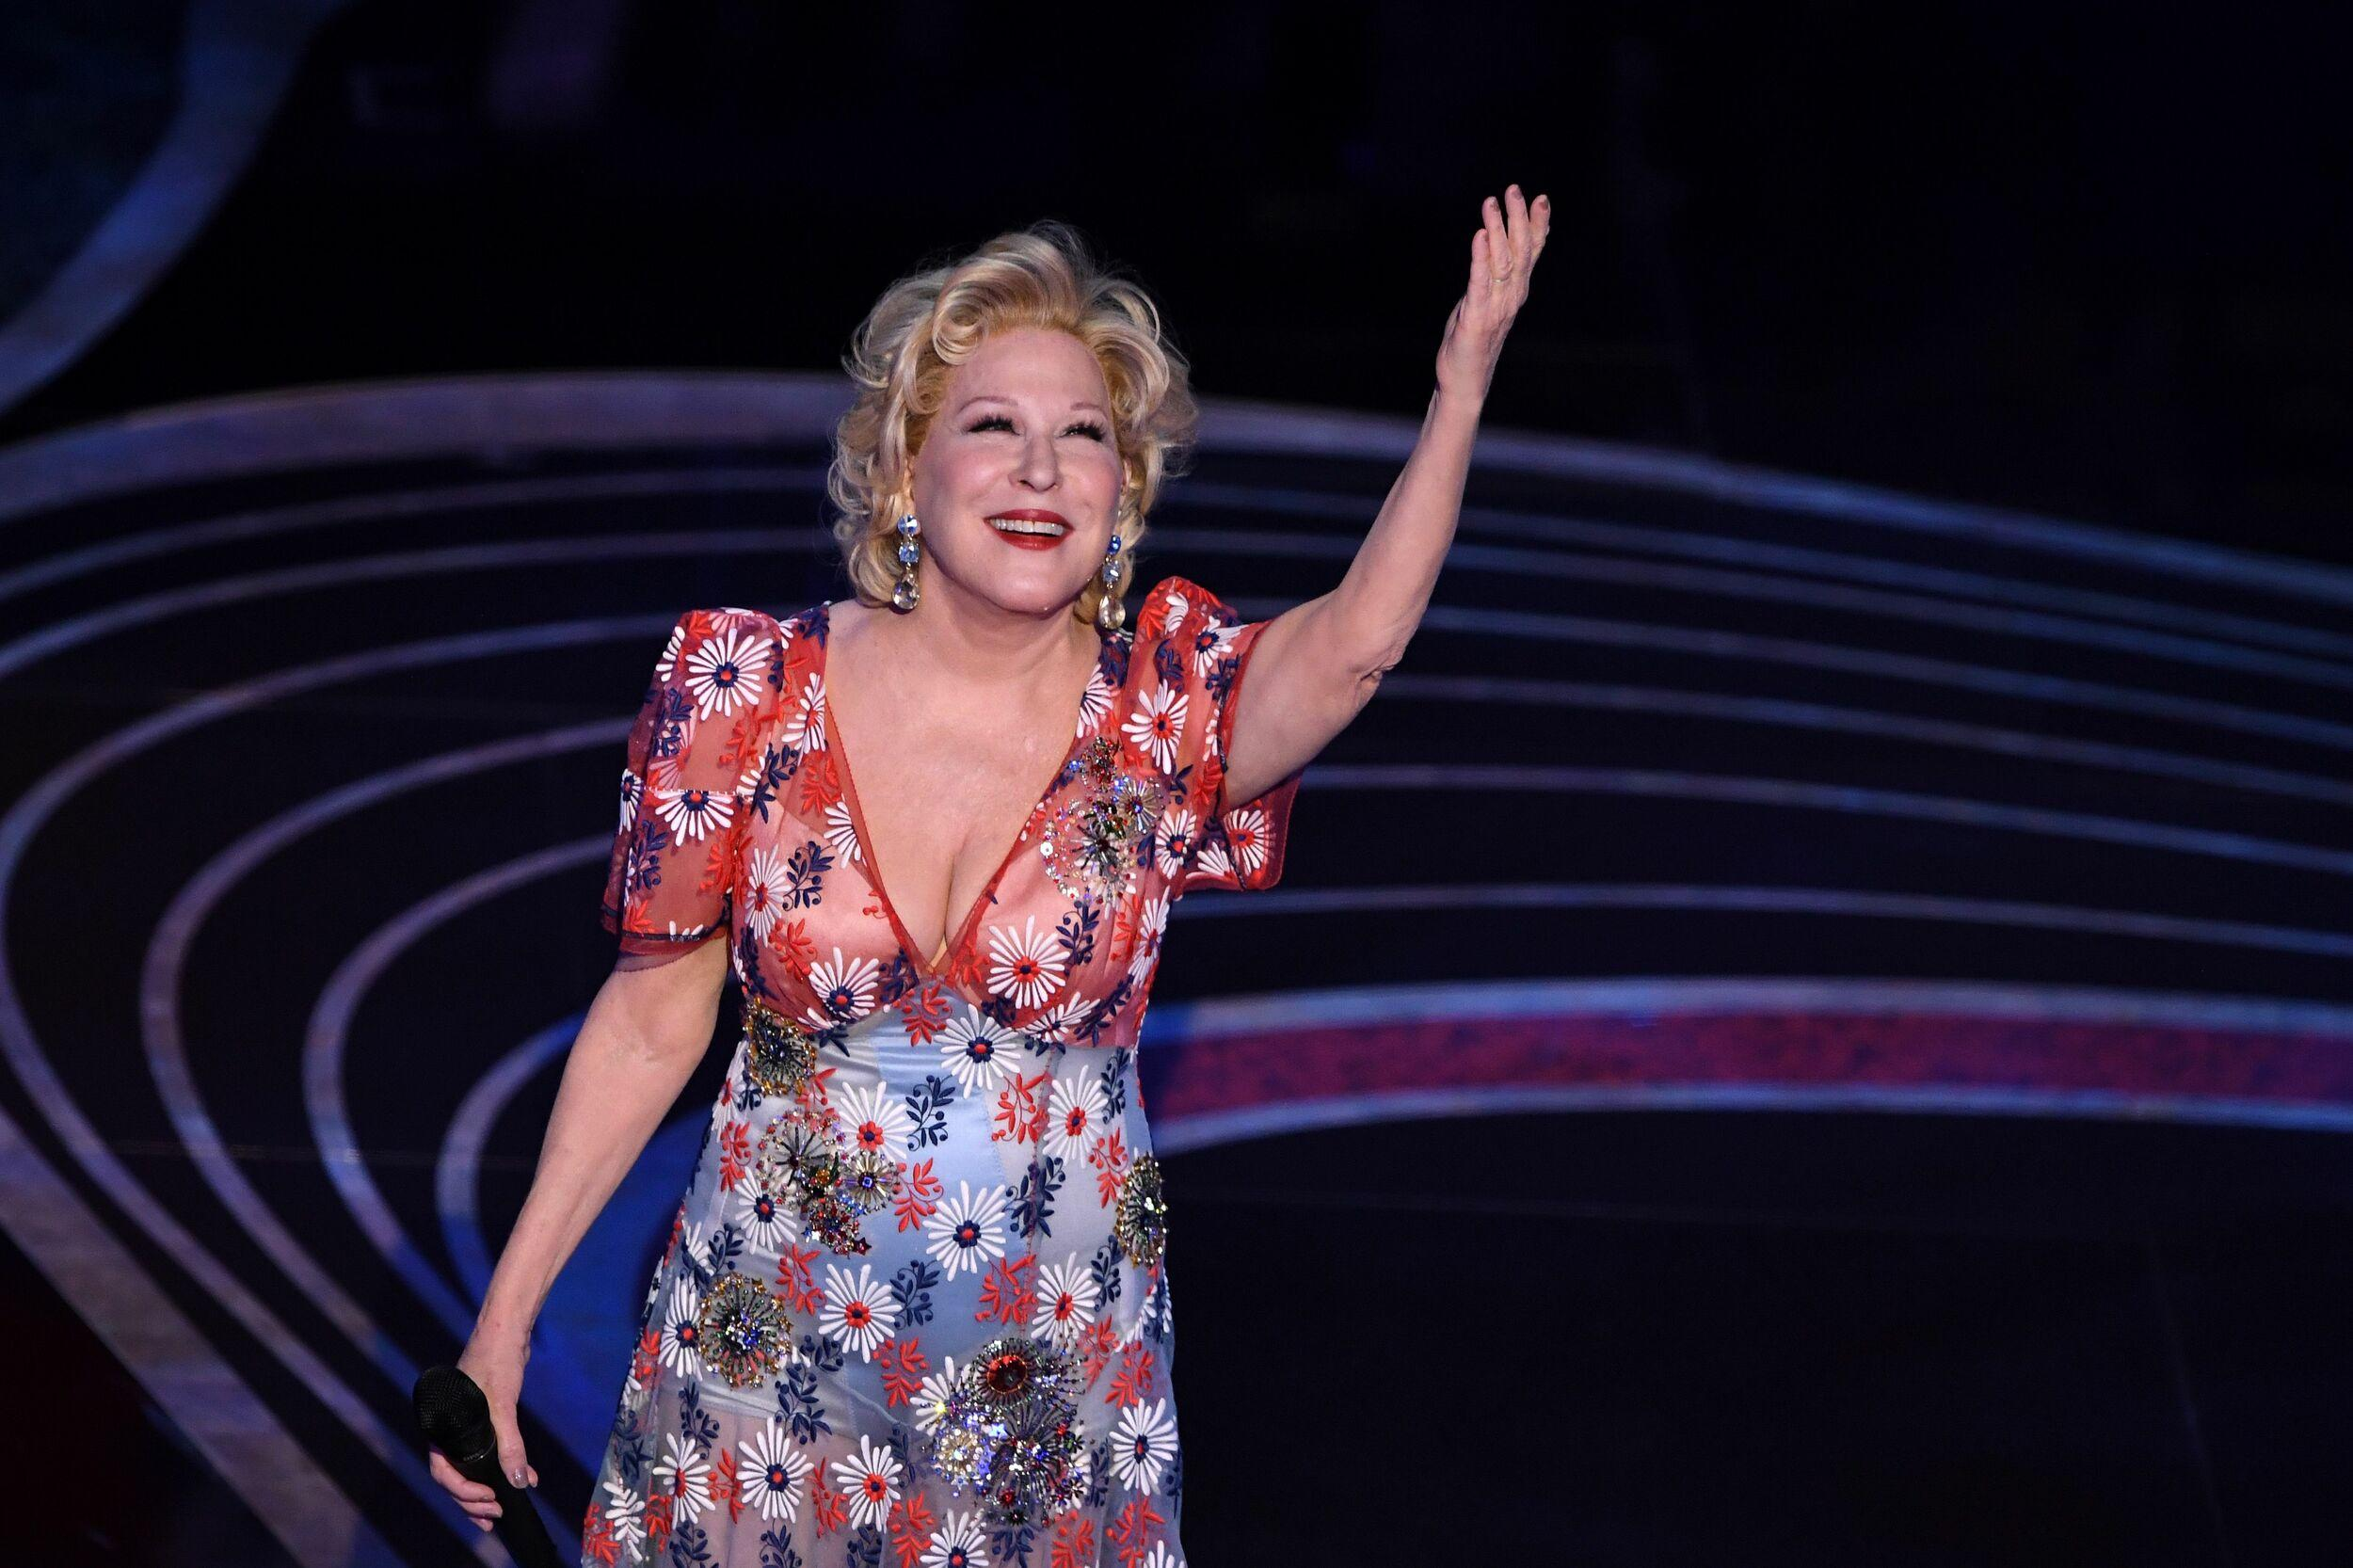 Us Singer Bette Midler performs during the 91st Annual Academy Awards at the Dolby Theatre in Hollywood, California on February 24, 2019. (Photo by VALERIE MACON / AFP)        (Photo credit should read VALERIE MACON/AFP/Getty Images)